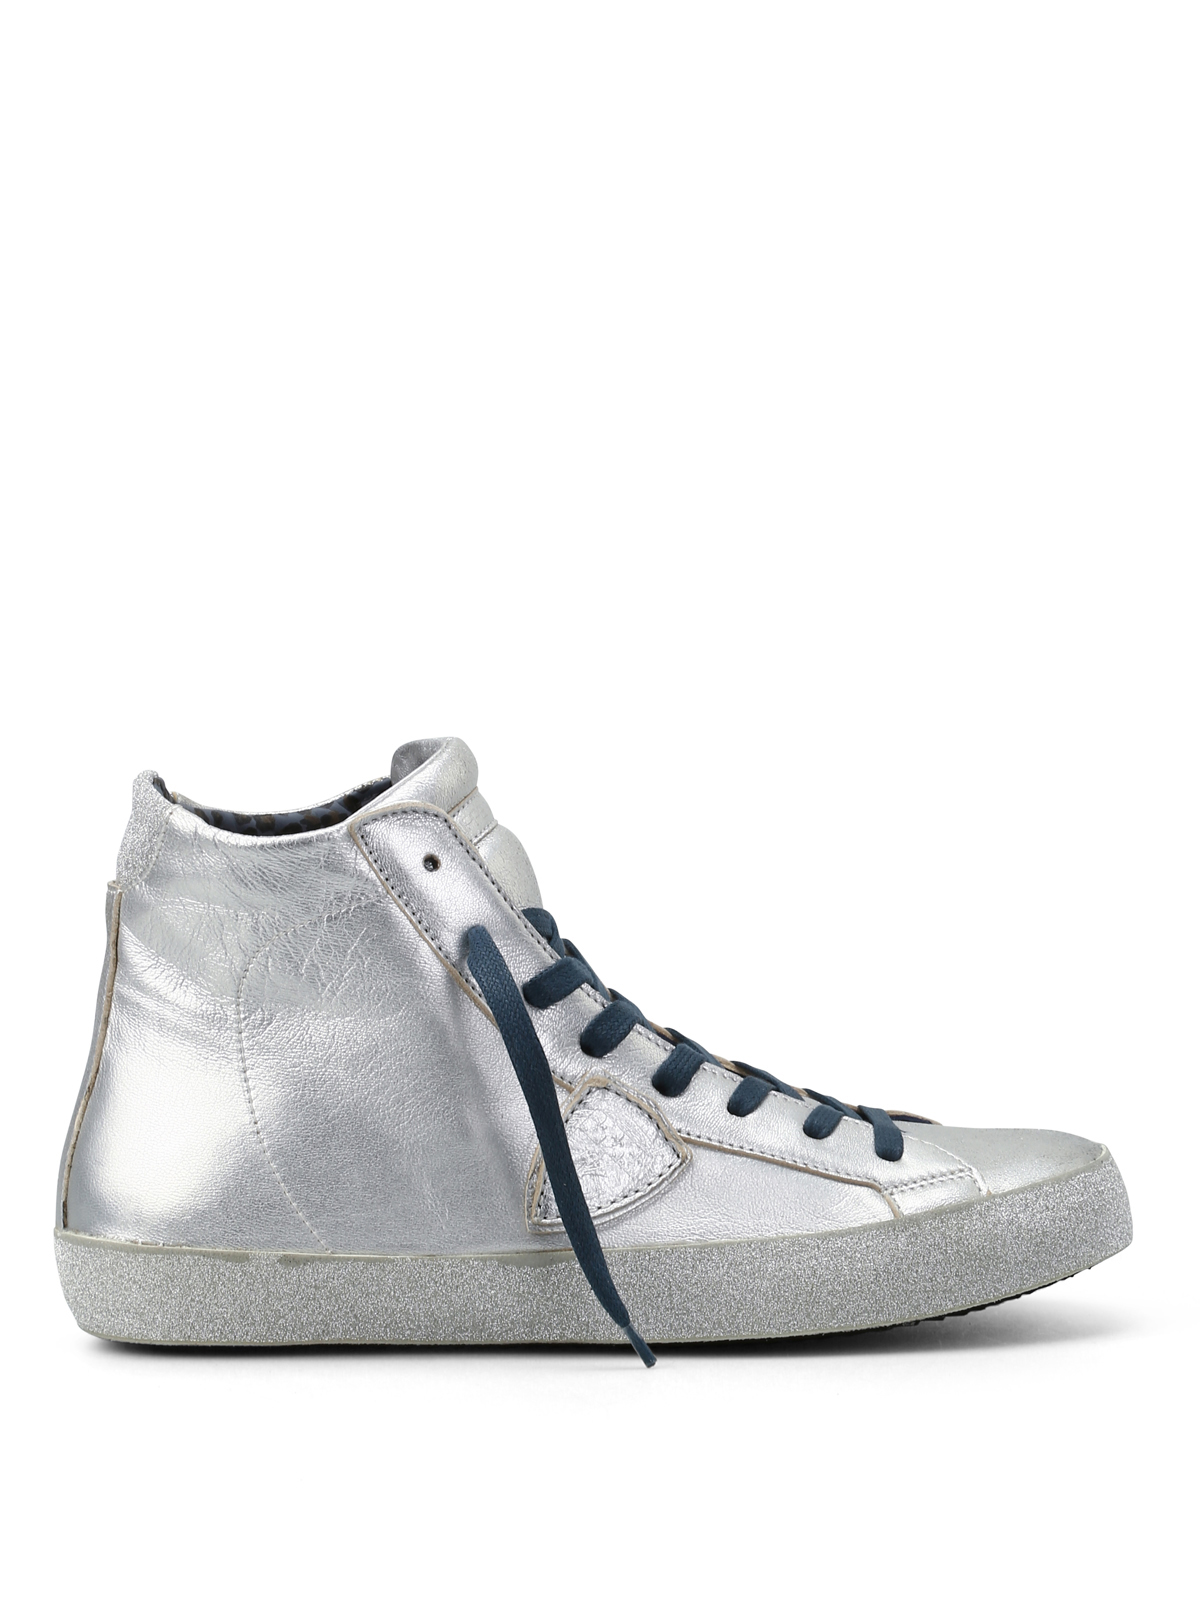 paris glitter high top sneakers by philippe model trainers ikrix. Black Bedroom Furniture Sets. Home Design Ideas